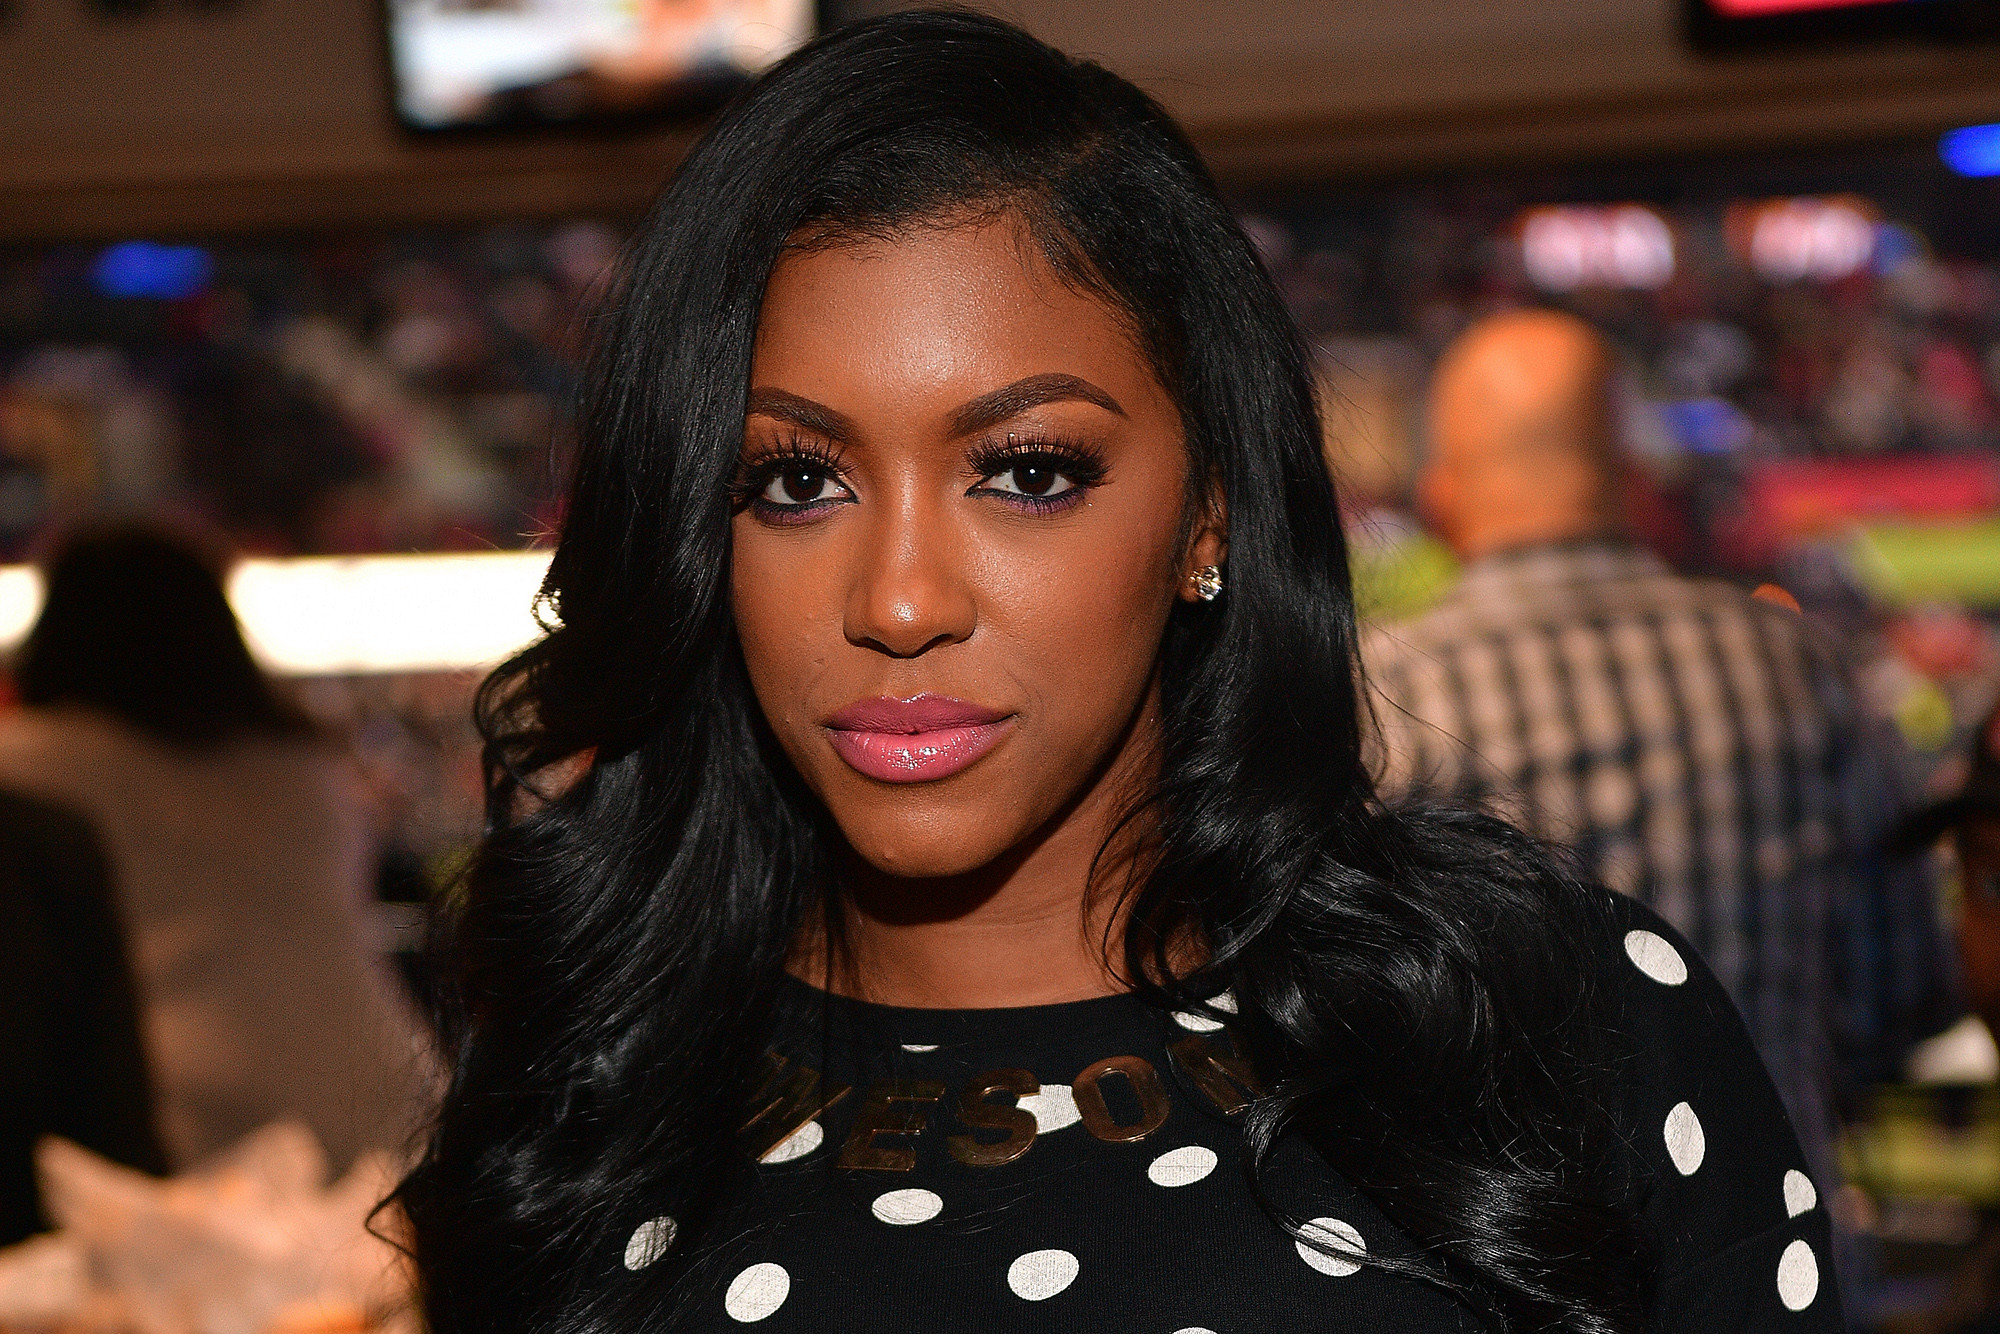 porsha-williams-spilled-the-tea-on-what-life-has-to-offer-fans-call-her-the-queen-of-snapback